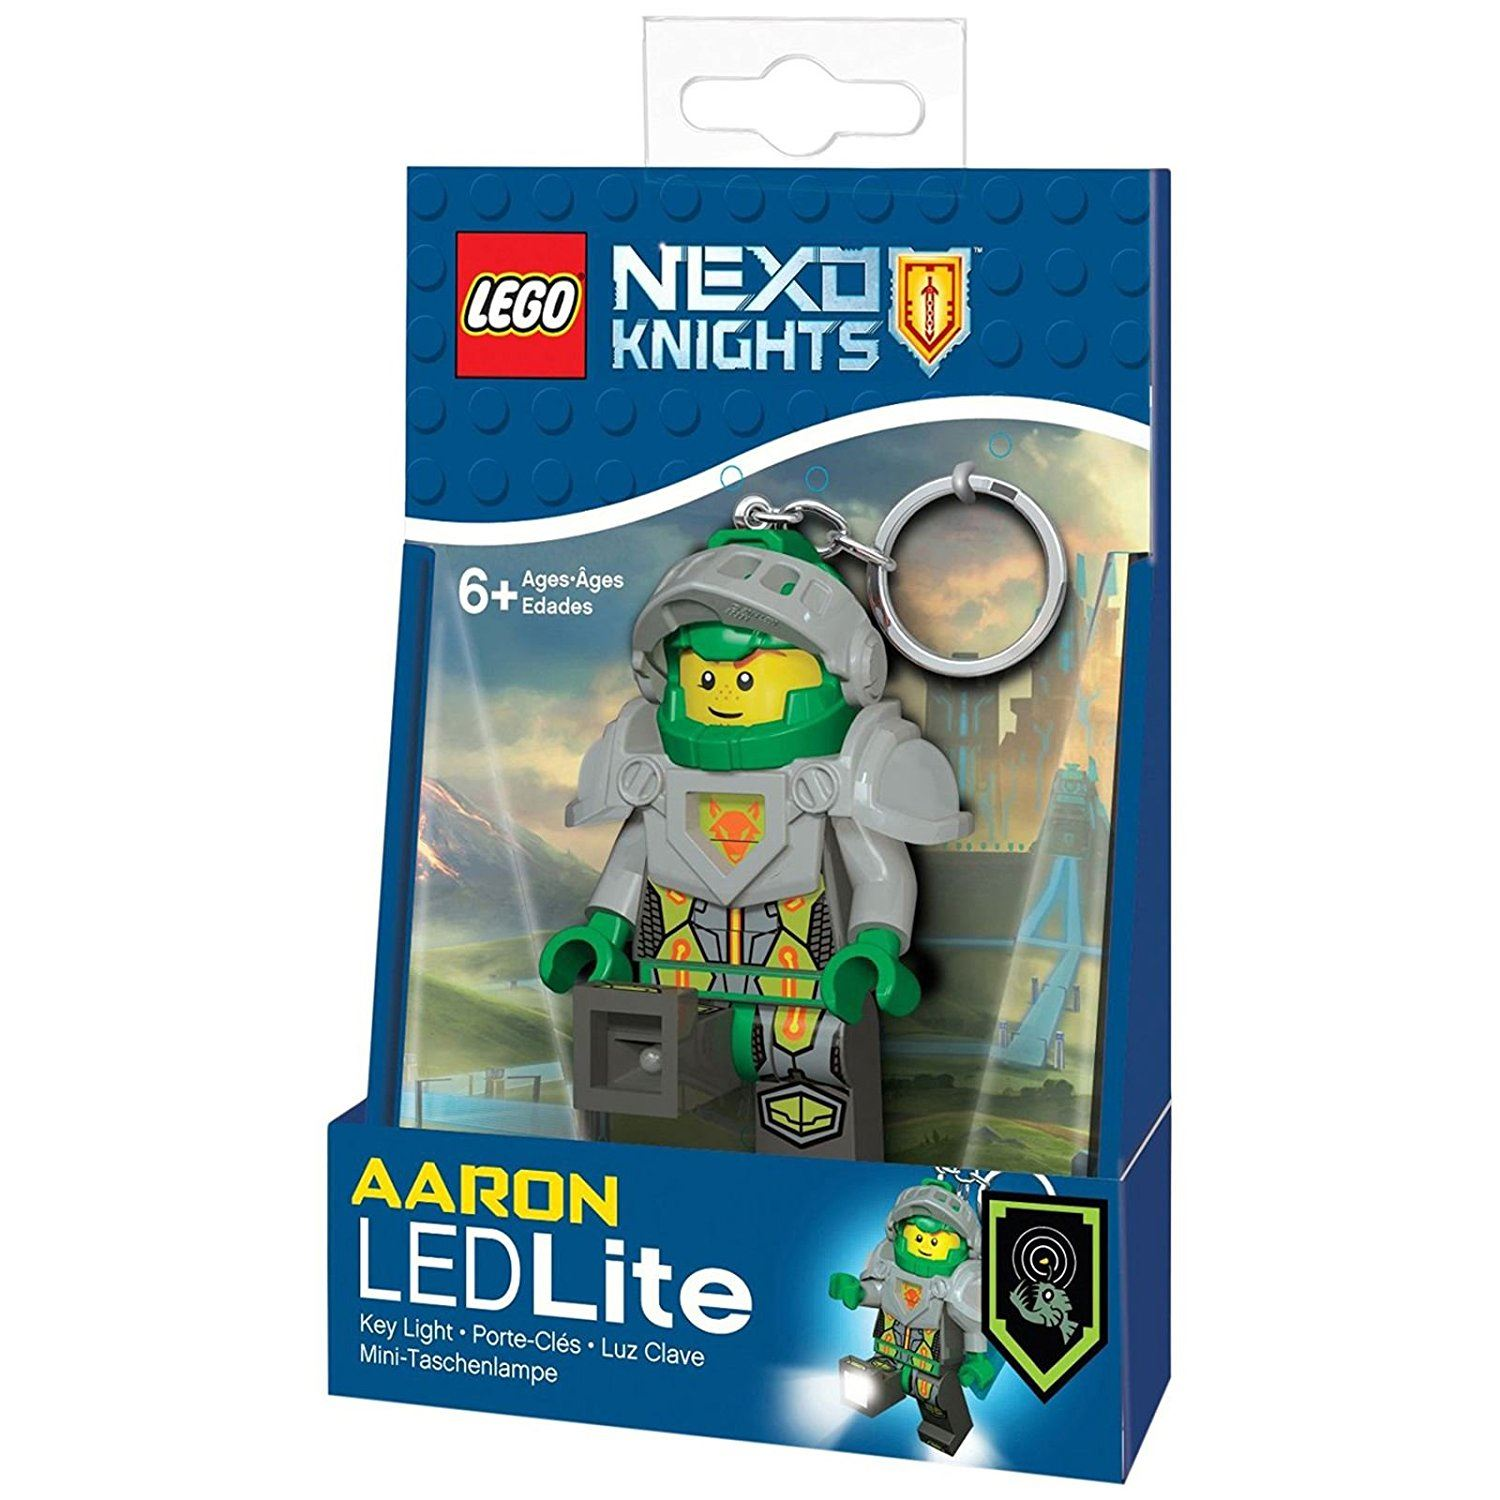 Lego Nexo Knights (aaron) Key Light #31202